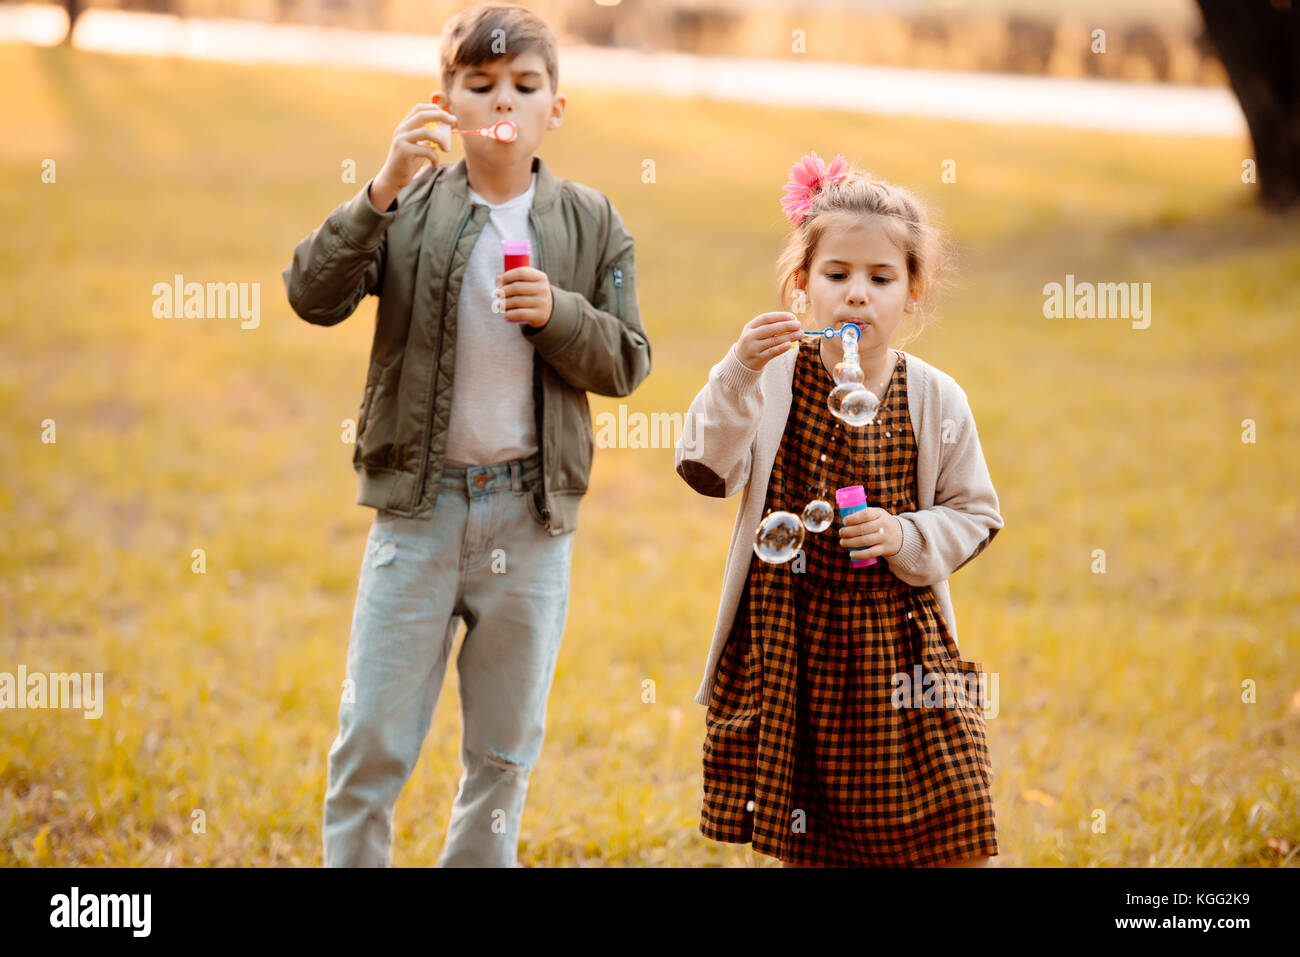 Siblings blowing soap bubbles - Stock Image